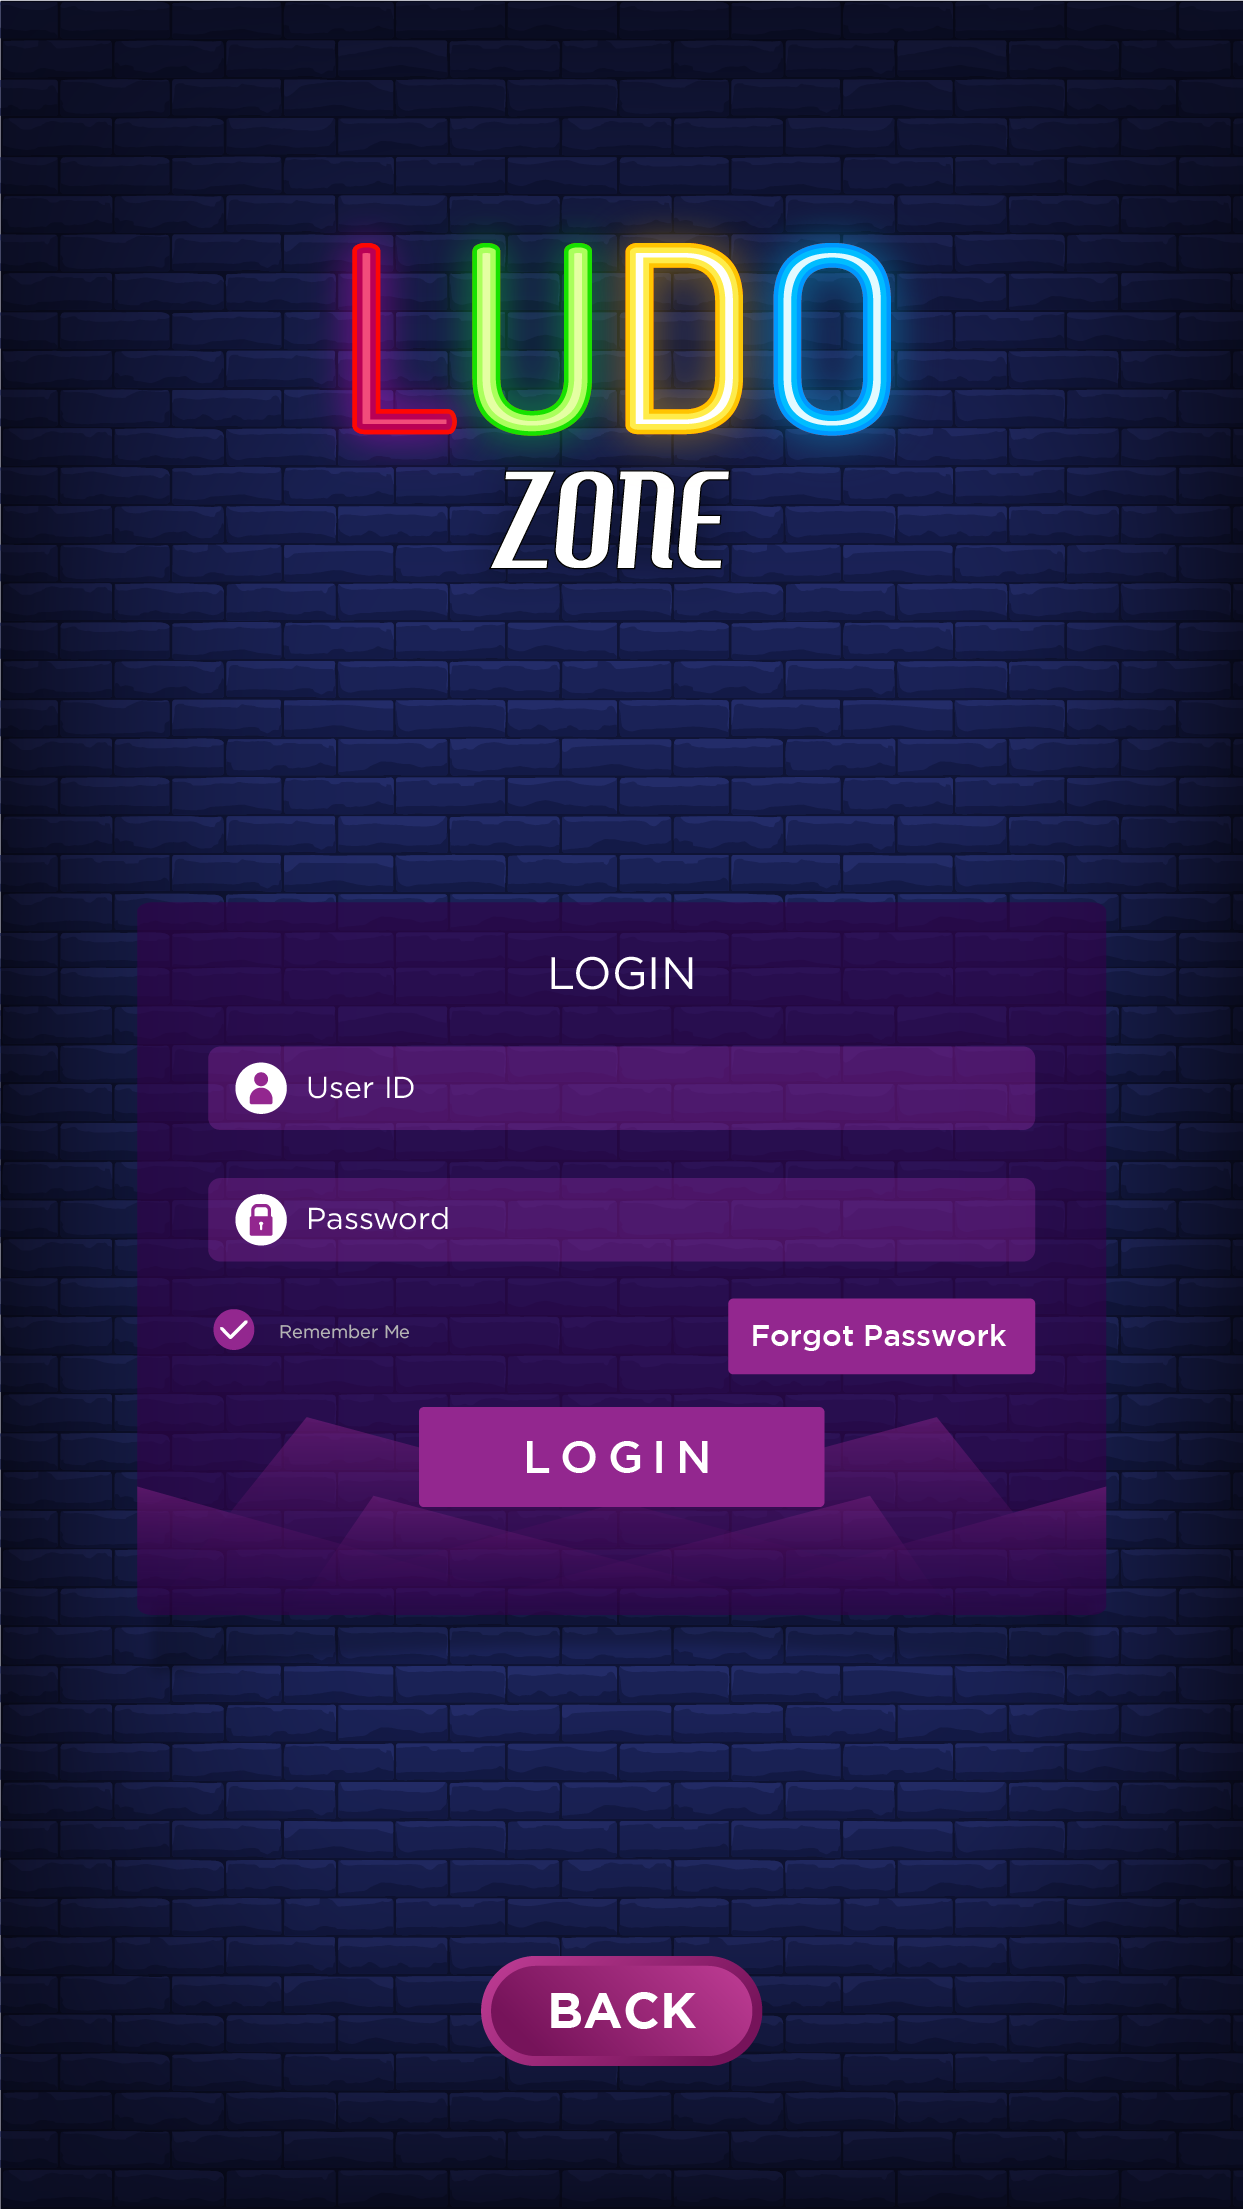 login-screen-1.png